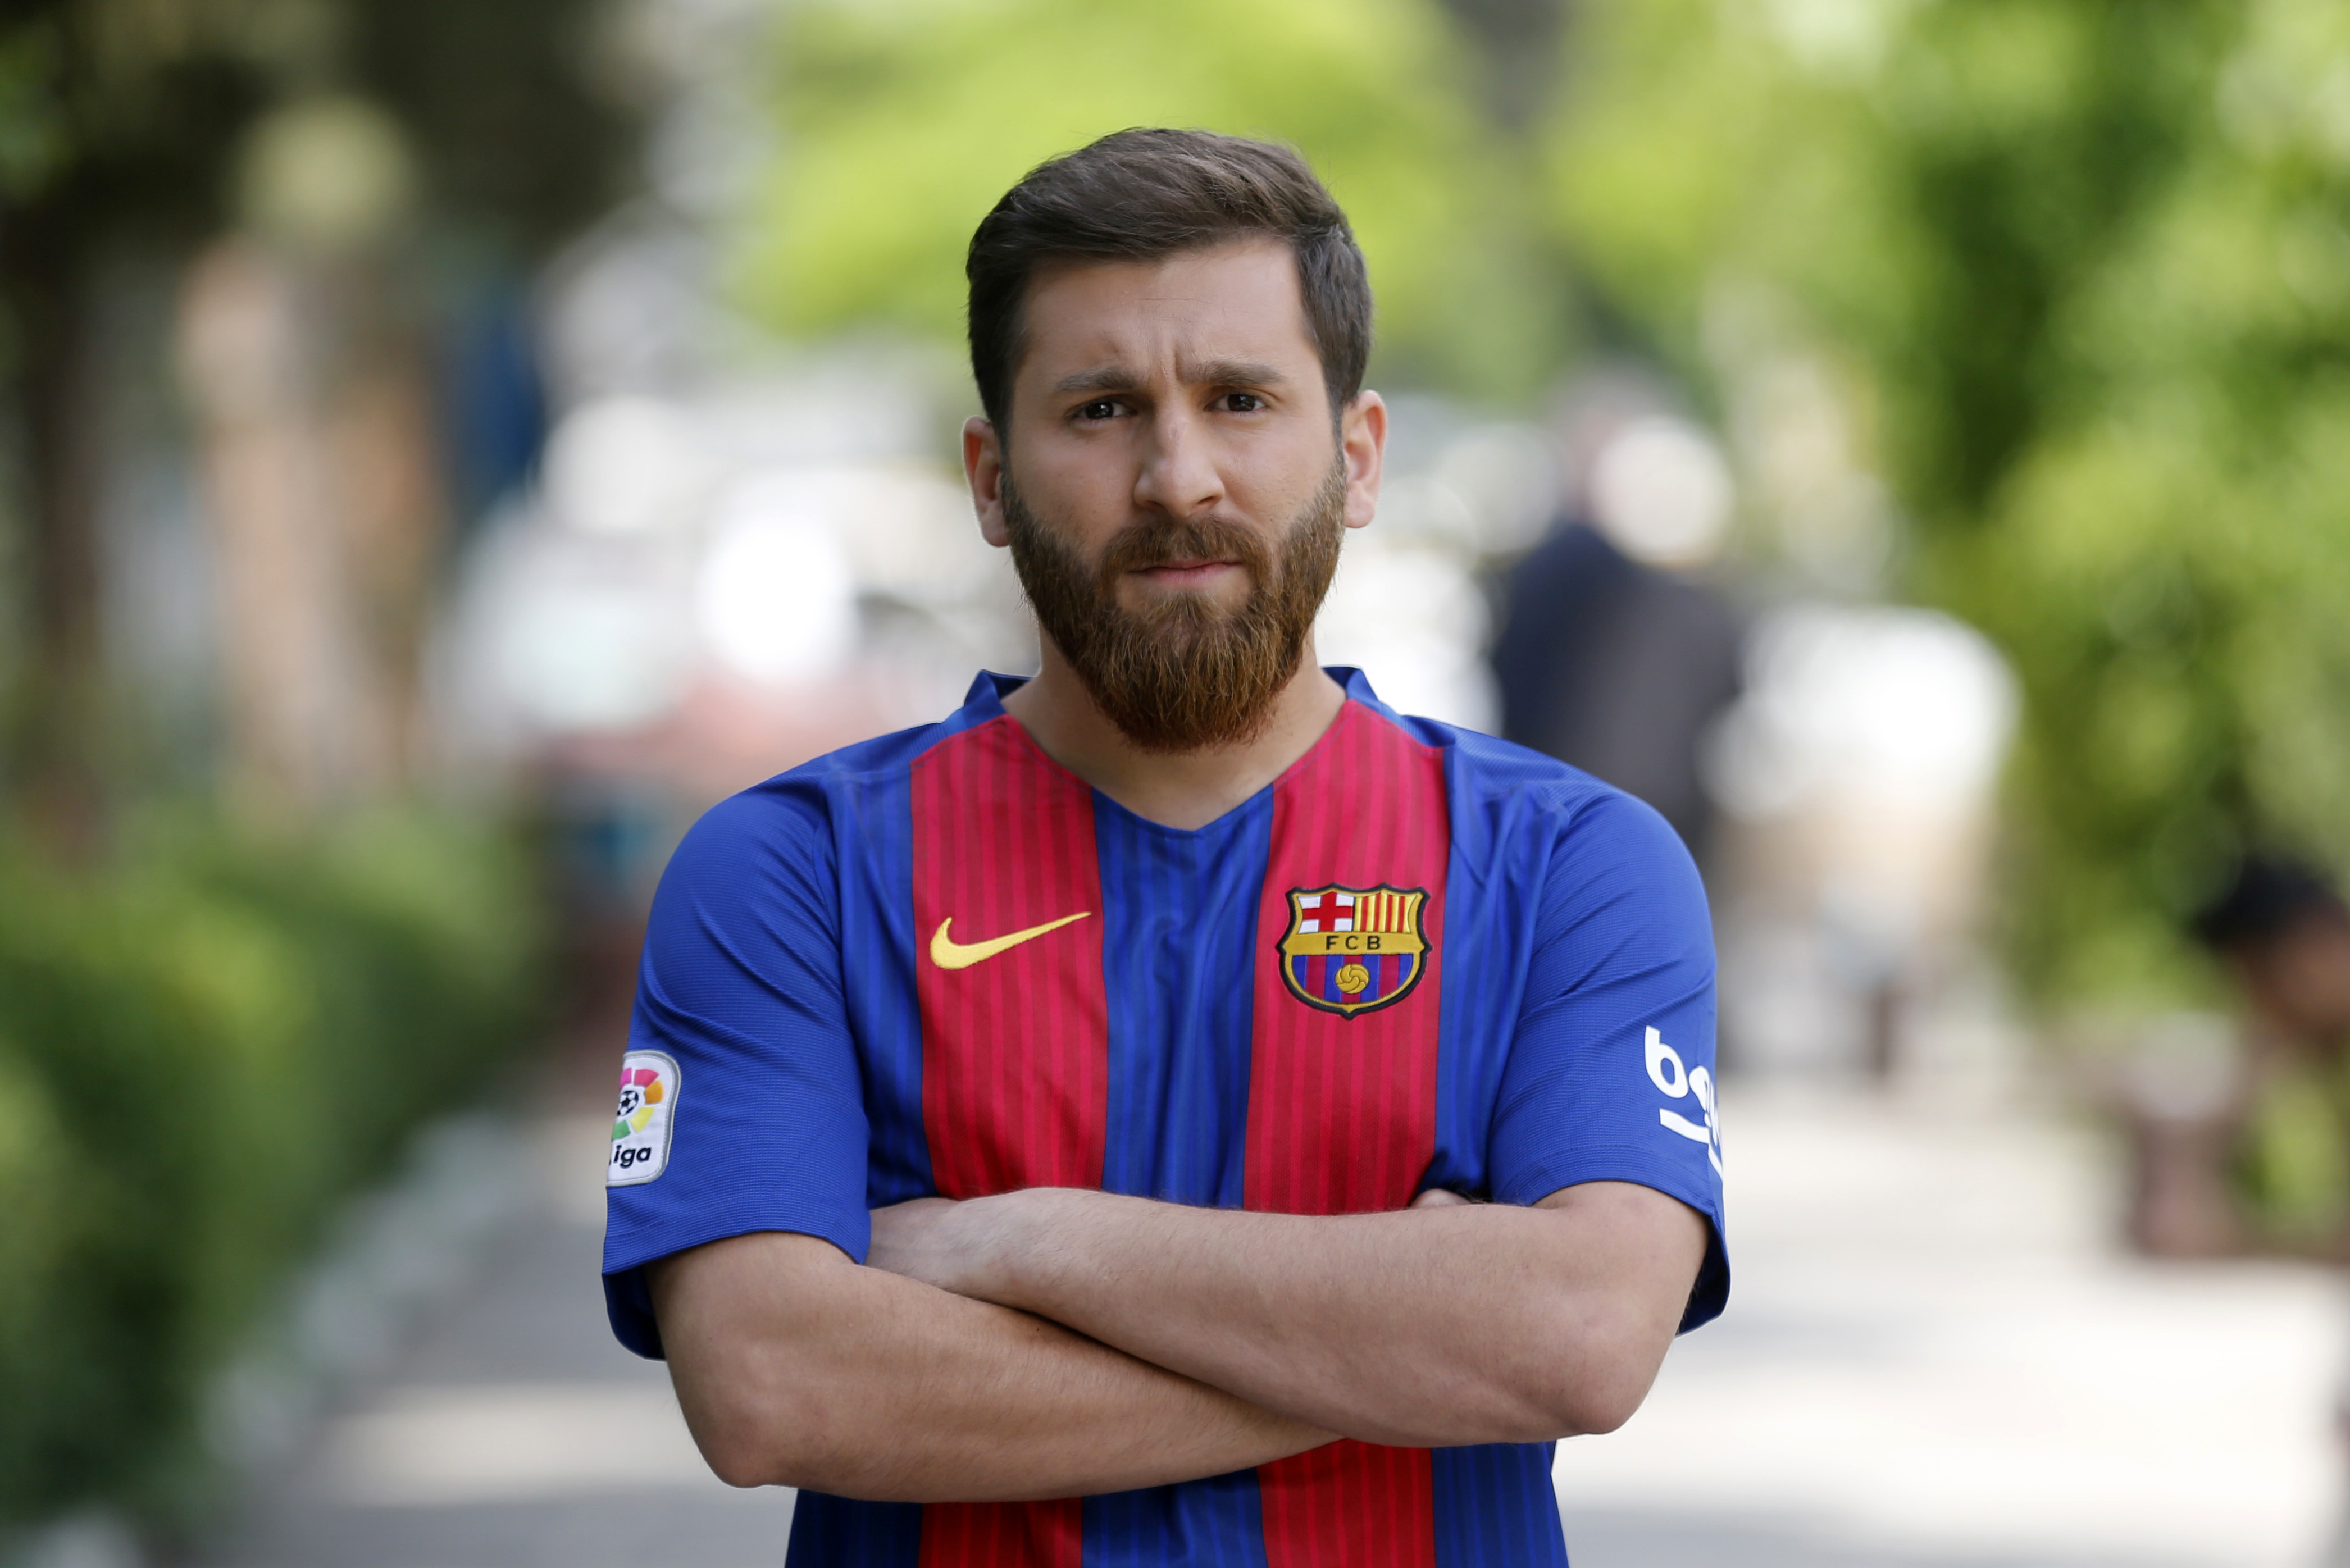 Student Looks So Much Like Lionel Messi Police Impounded His Car GettyImages 680292872